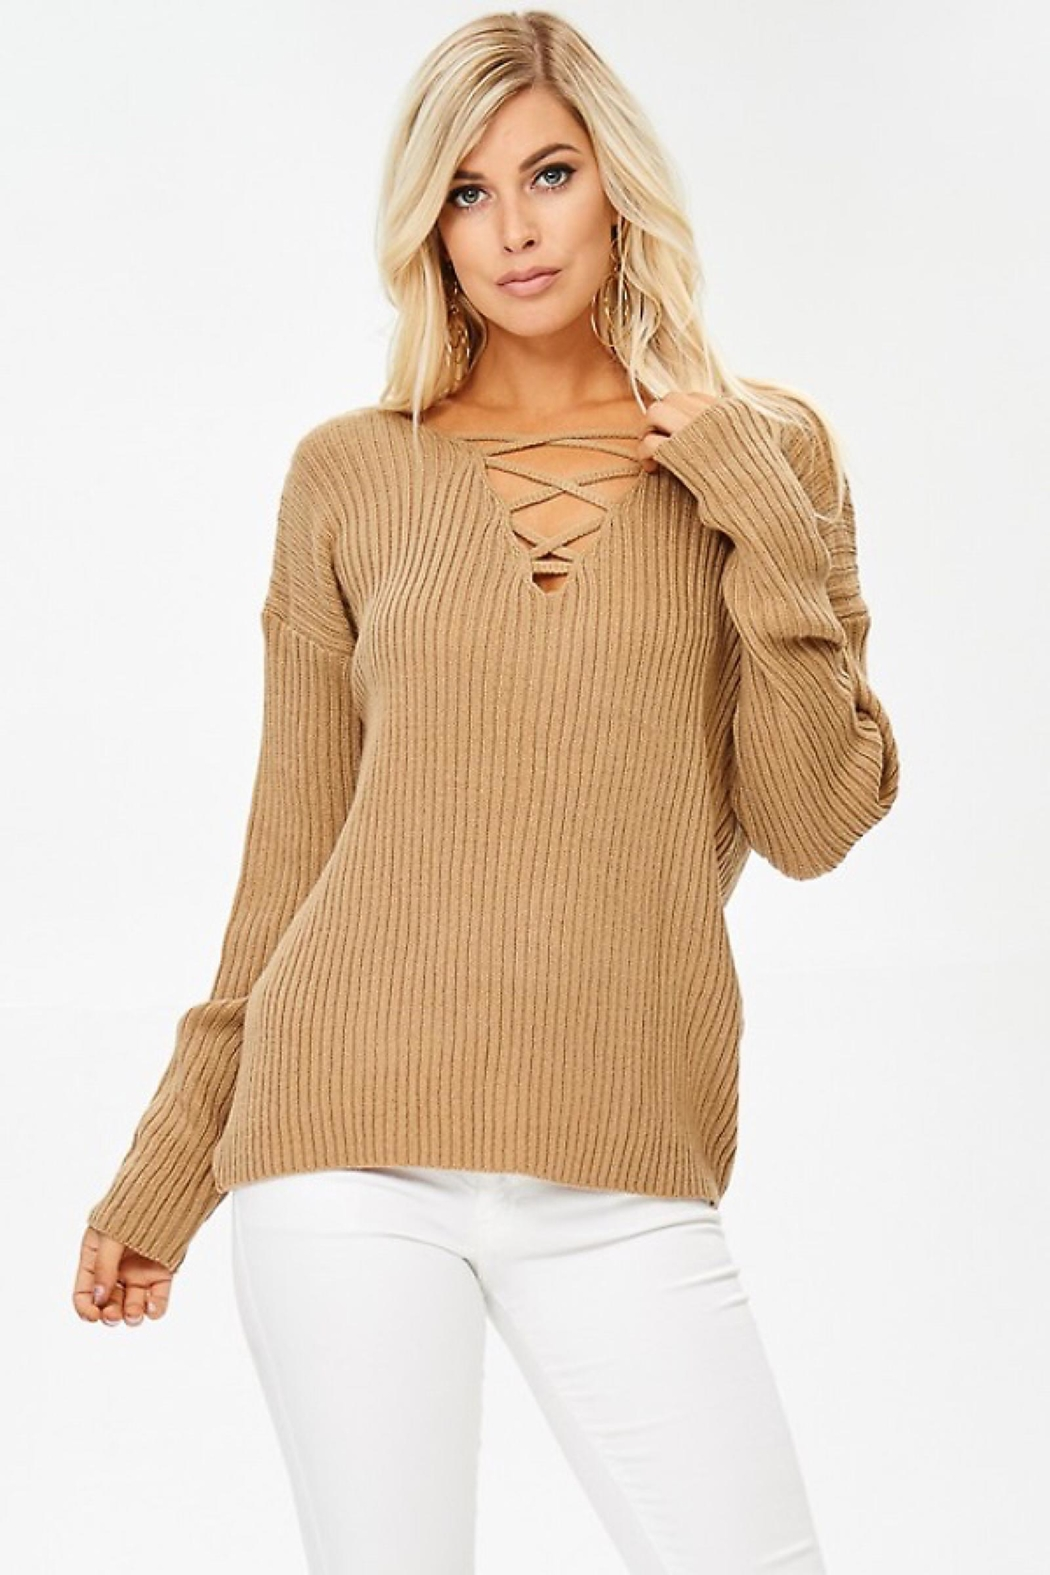 People Outfitter Caramel Crisscross Ribbed Sweater - Main Image